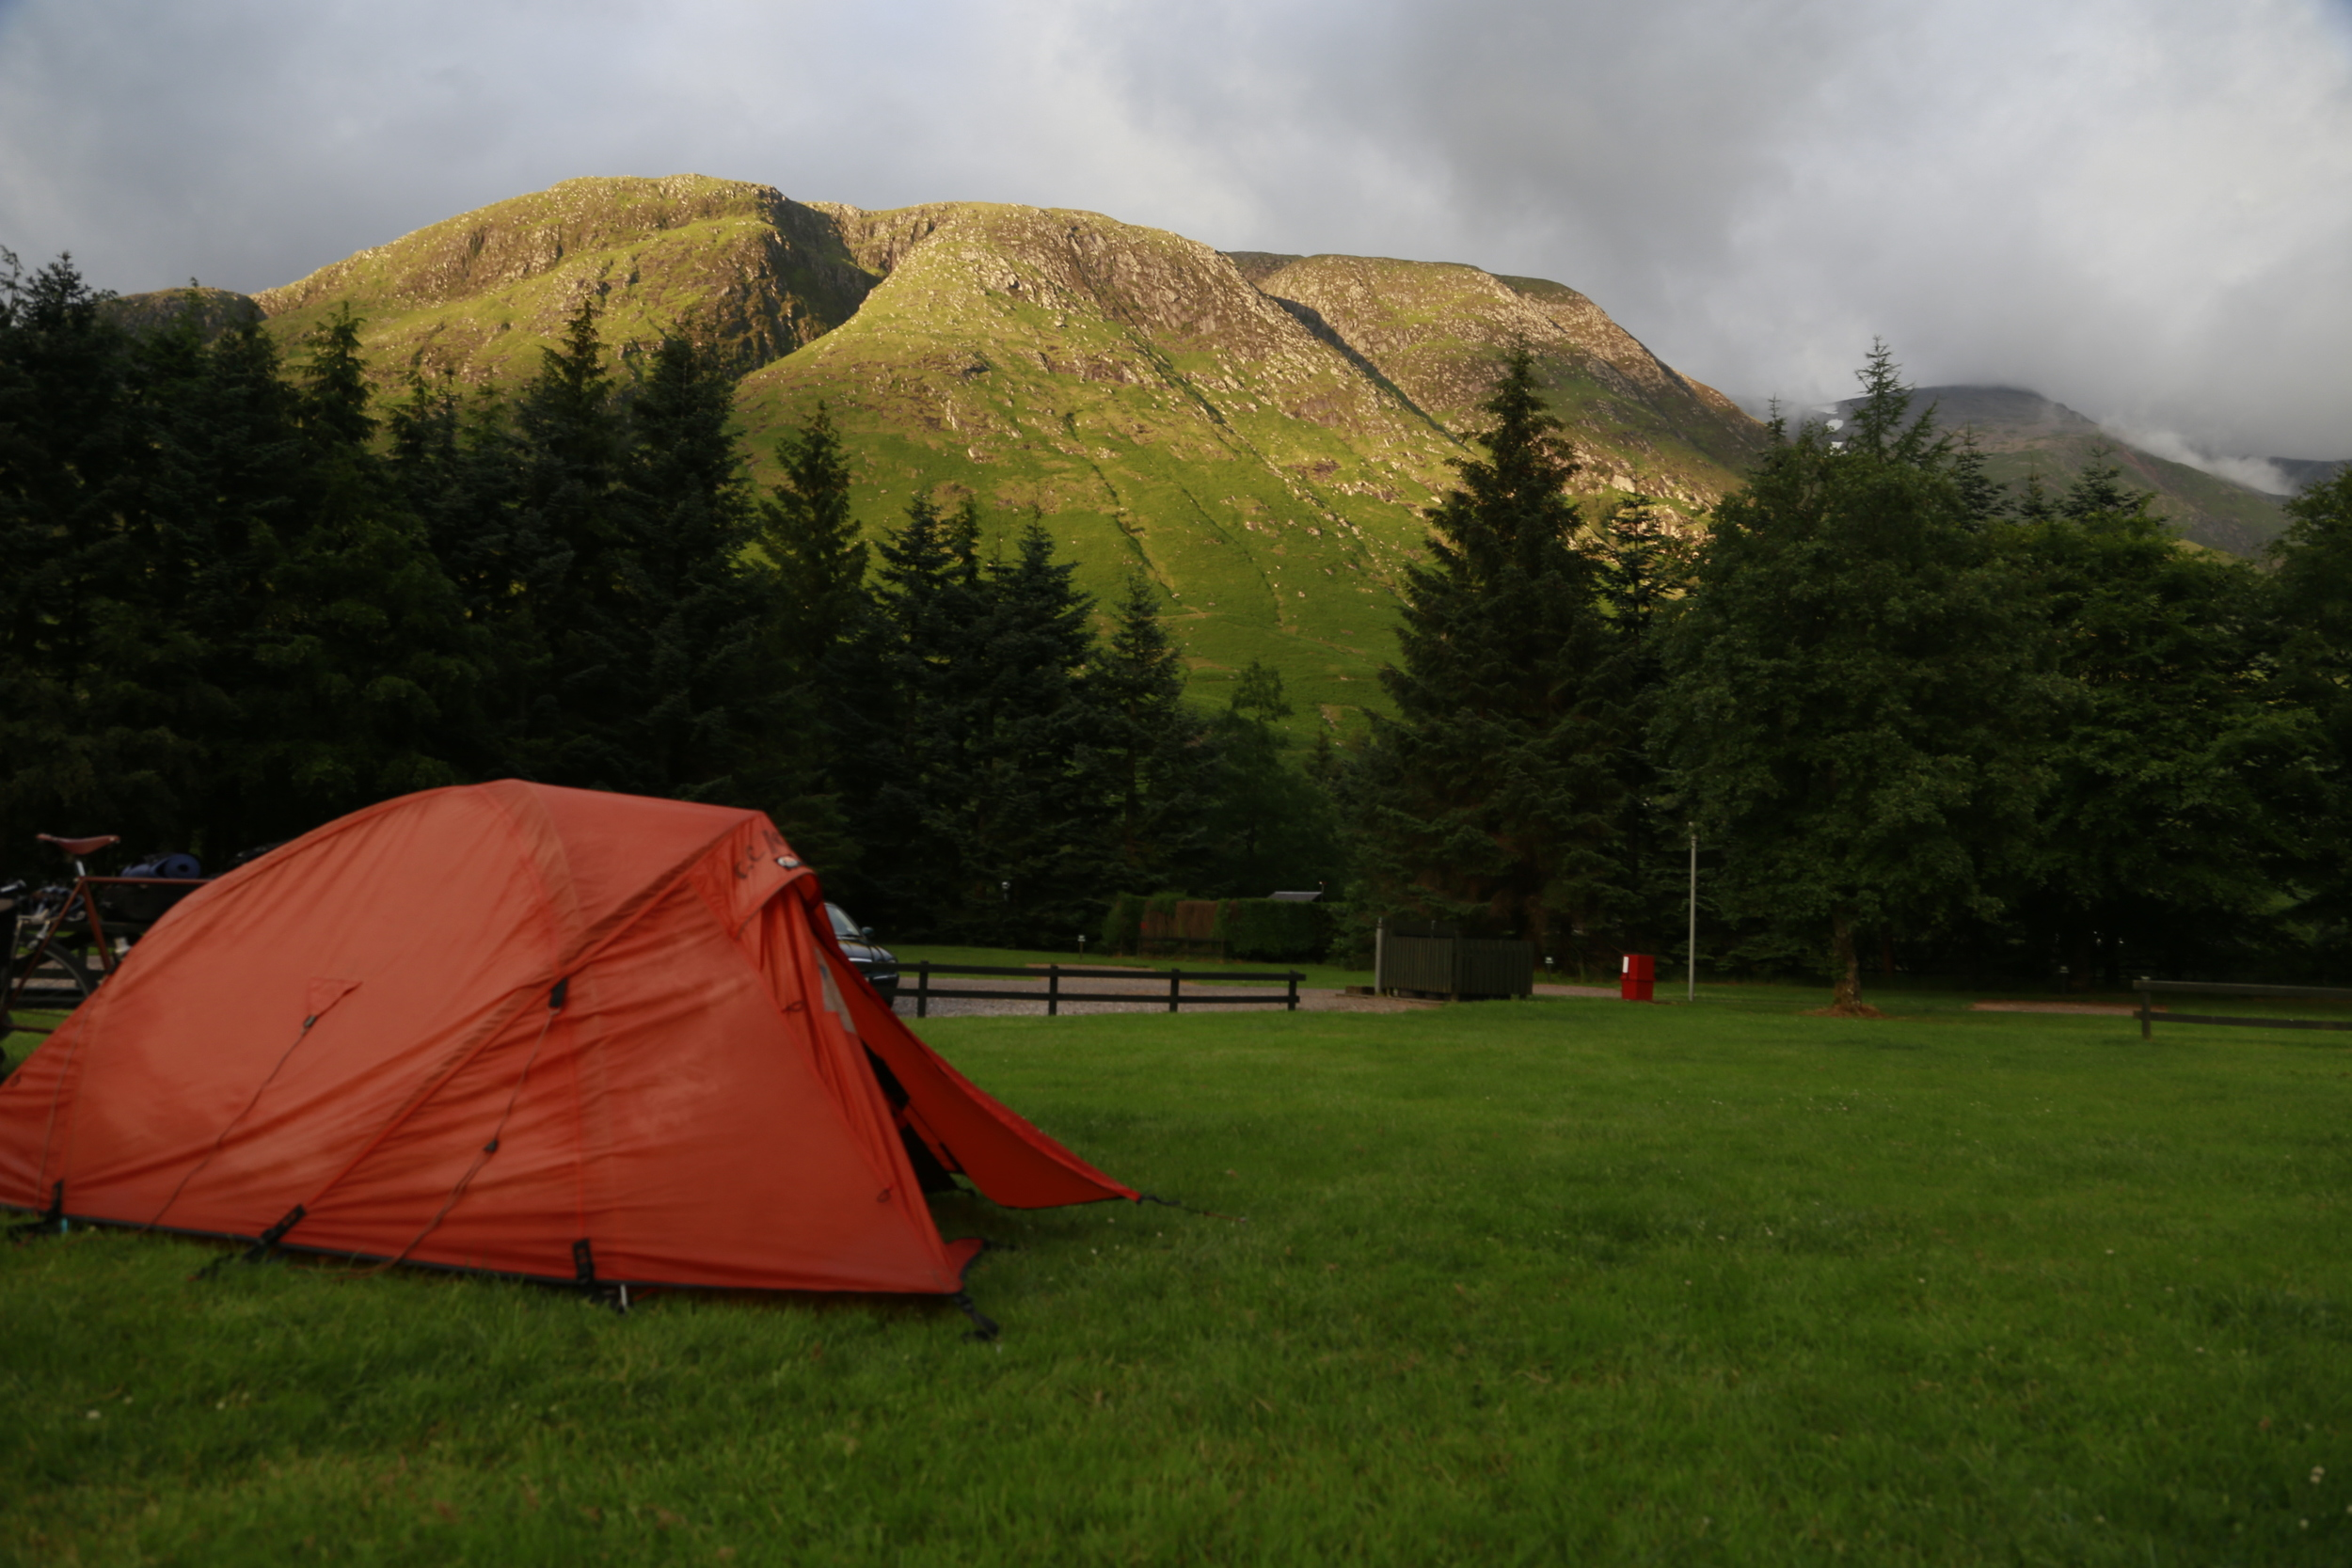 scotland, snowdonia, nature, wild, camping, hilleberg, hiking, lost, forest, fire, camp, swiss army, leatherman, sleeping bag, escape, scenery, tent, stove, MSR,